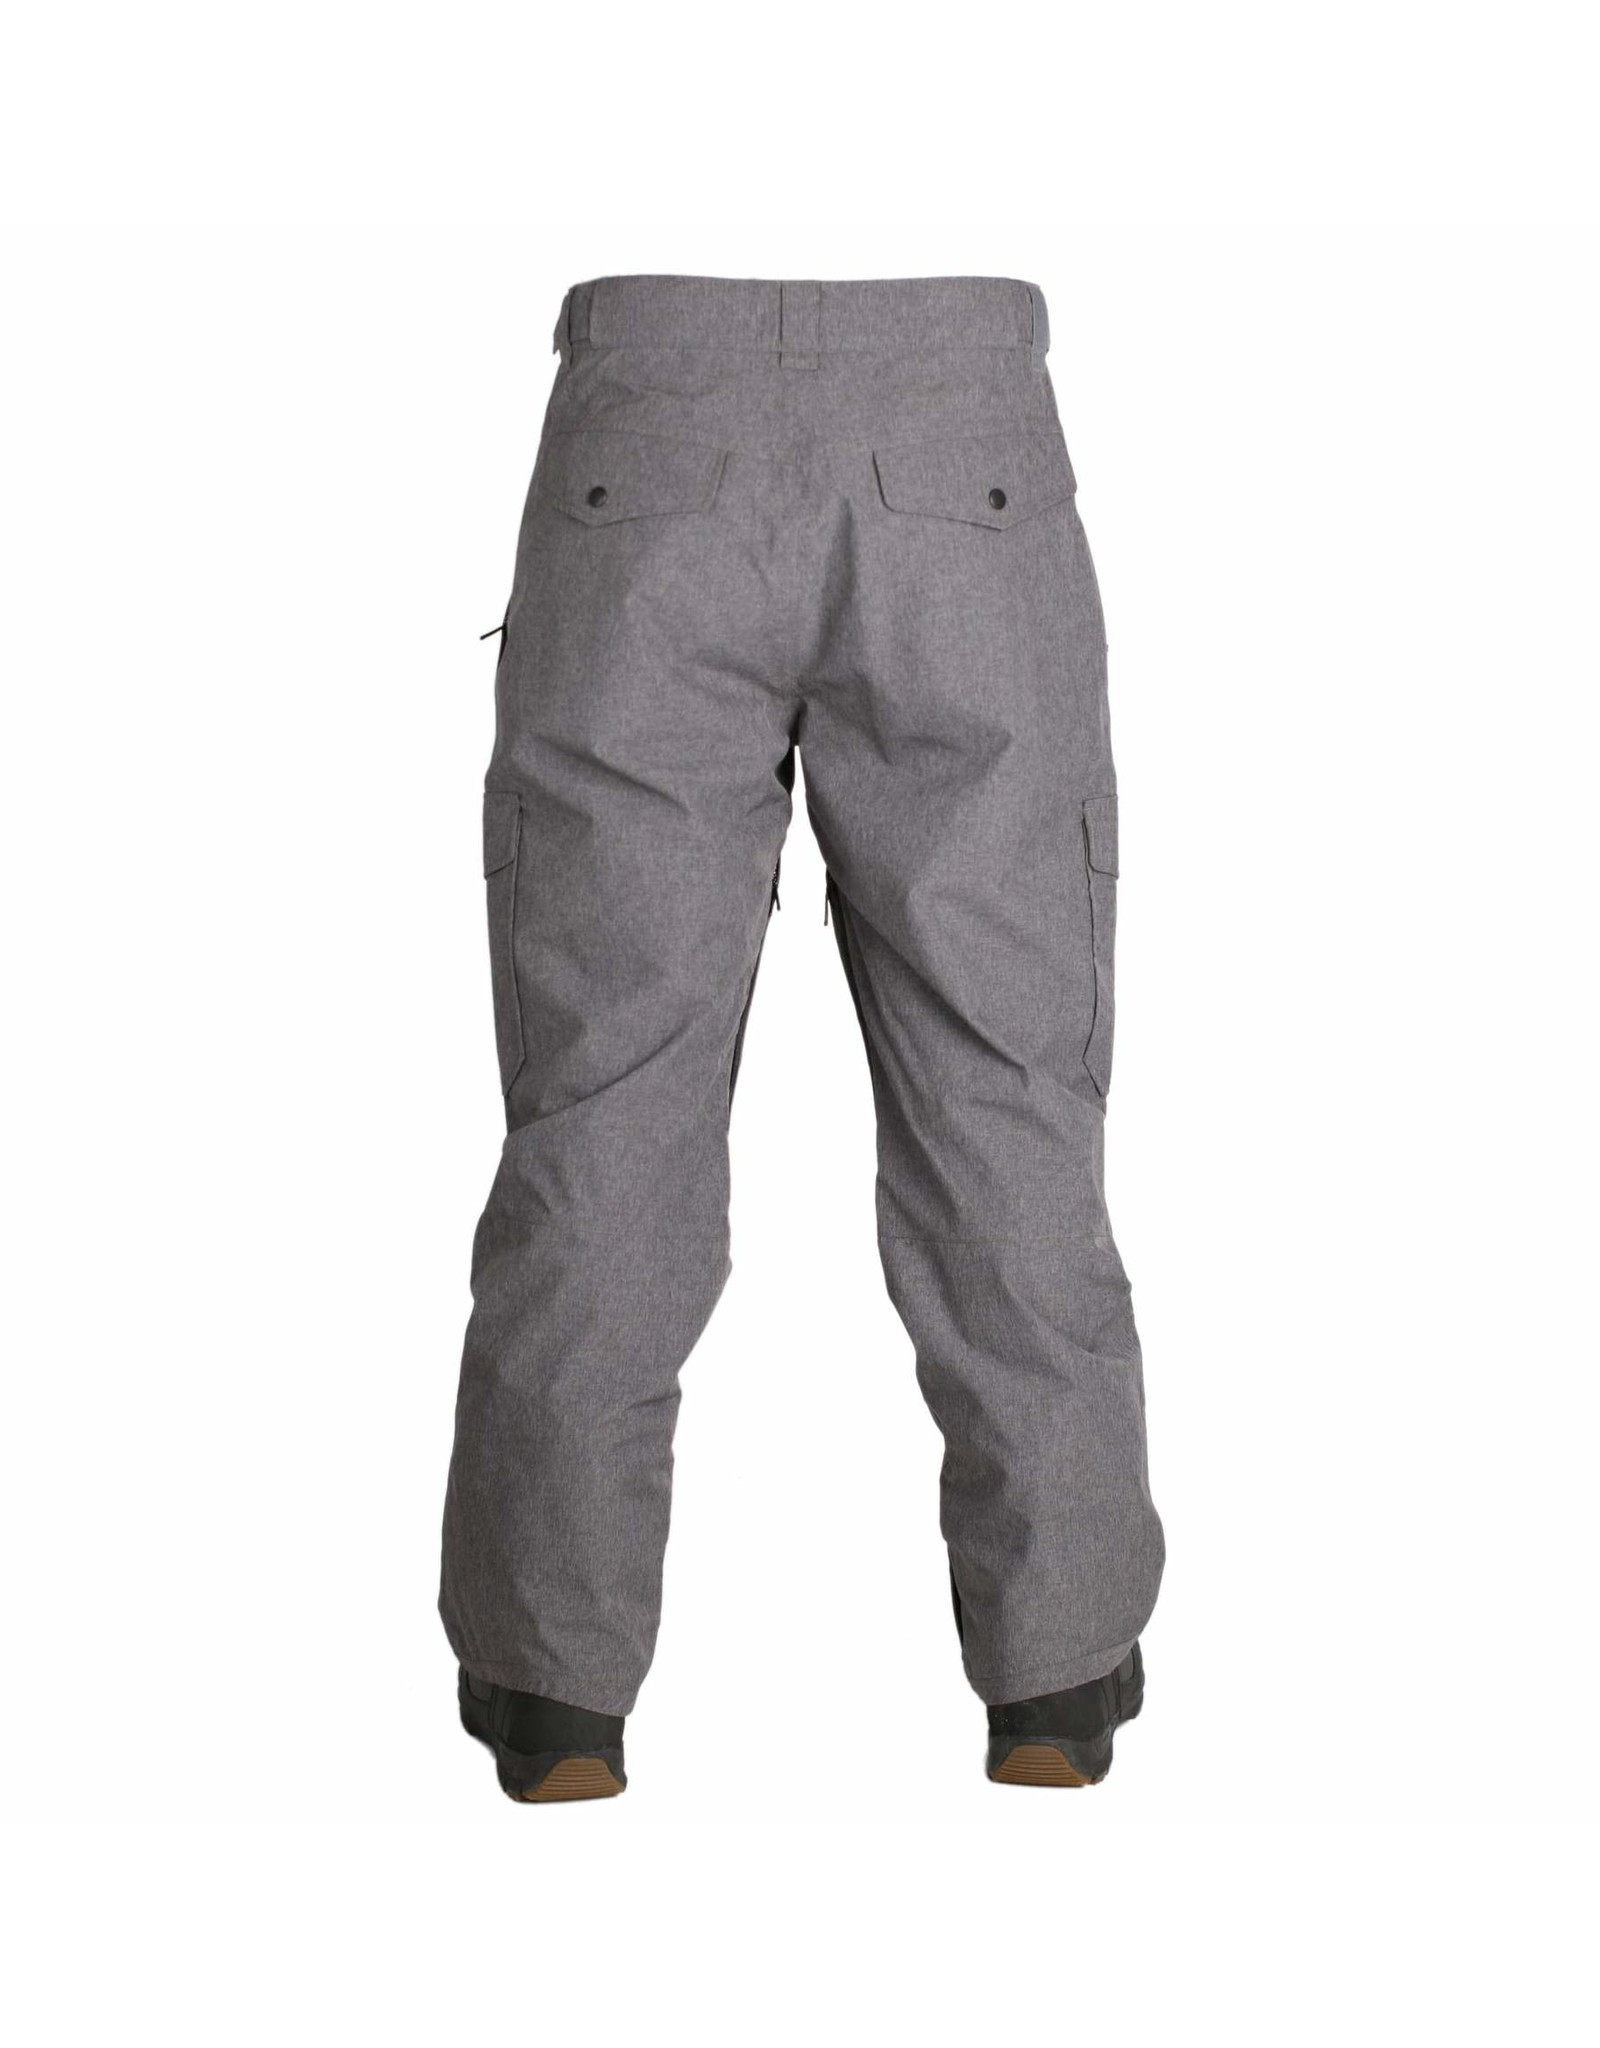 Ride Phinney Pant-Insulated